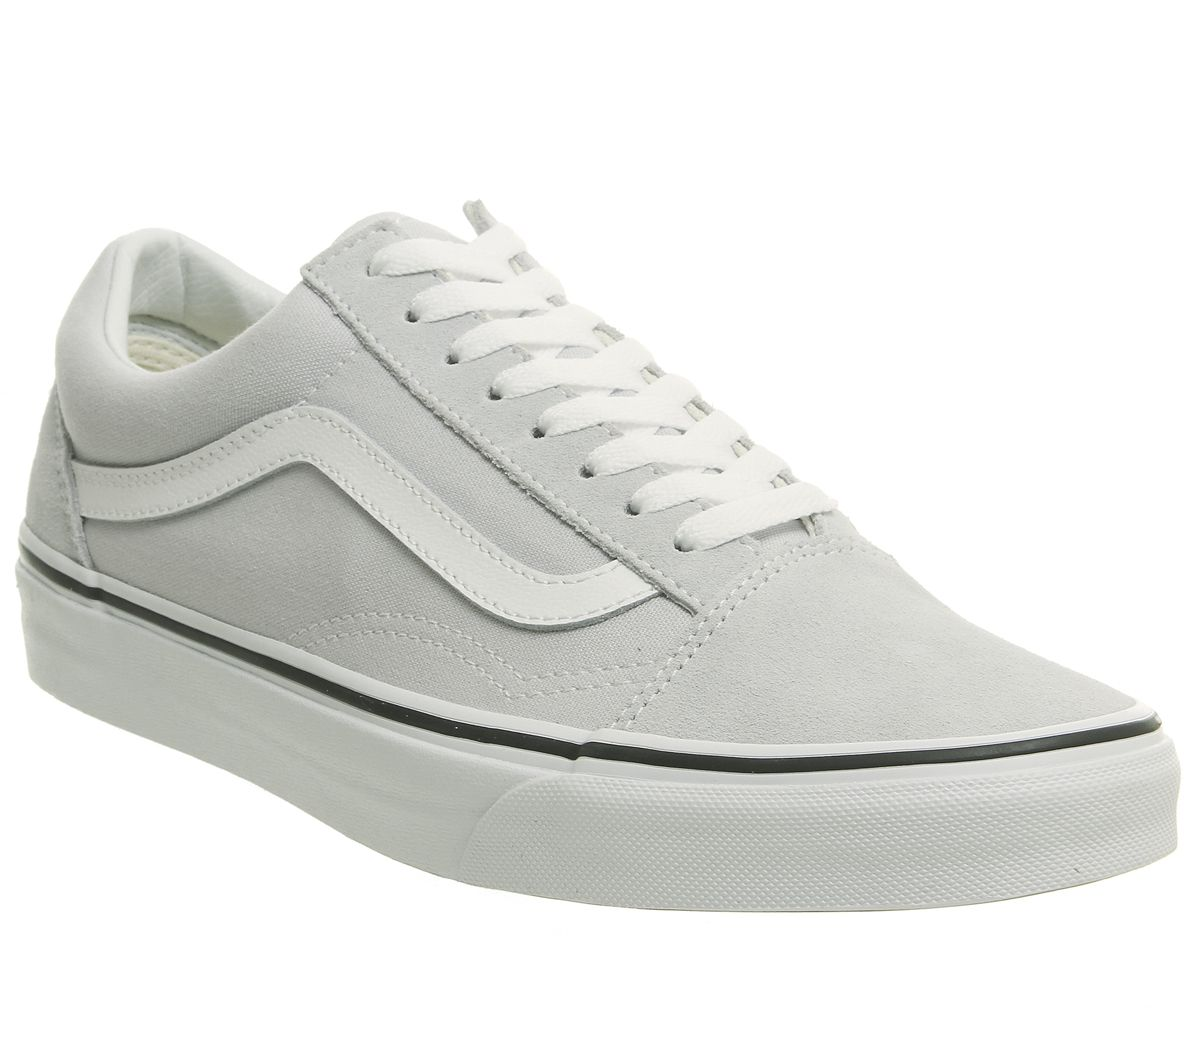 fa7ee0d2b7 Vans Old Skool Trainers Gray Dawn True White - Unisex Sports